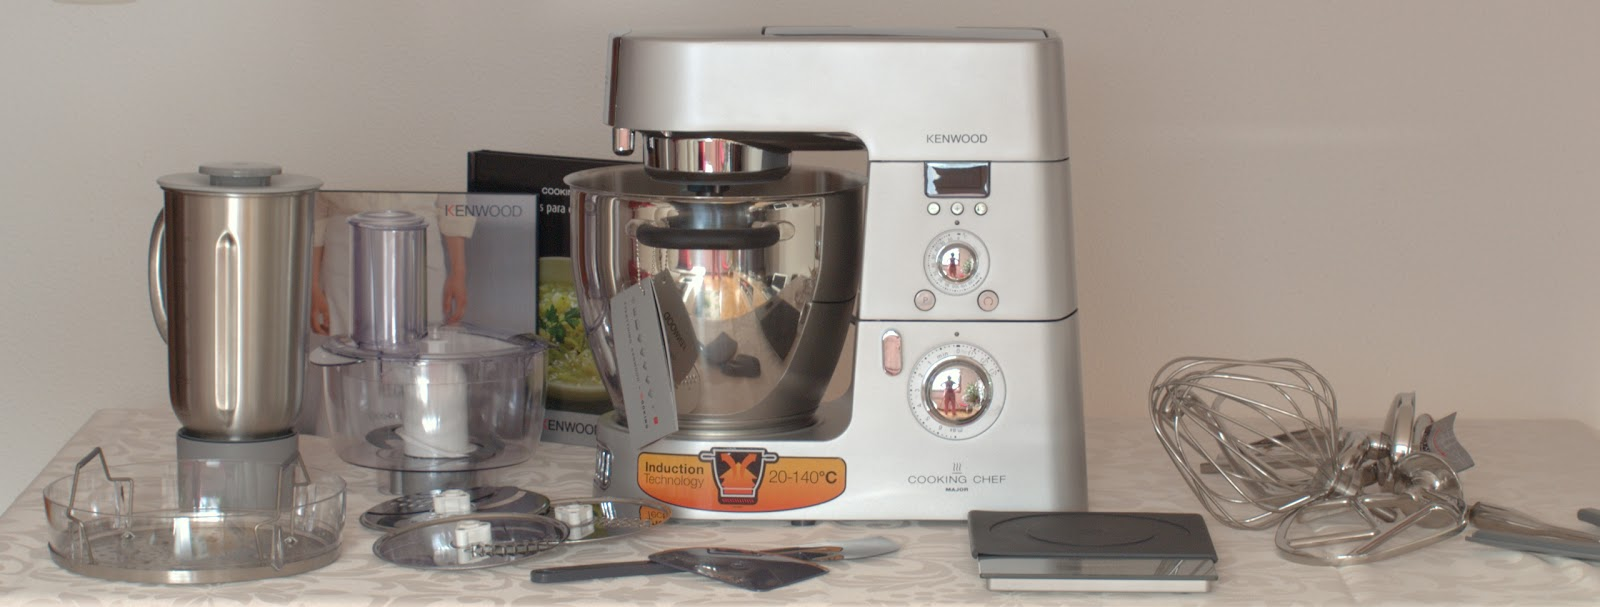 Cooking chef - Comprar thermomix corte ingles ...